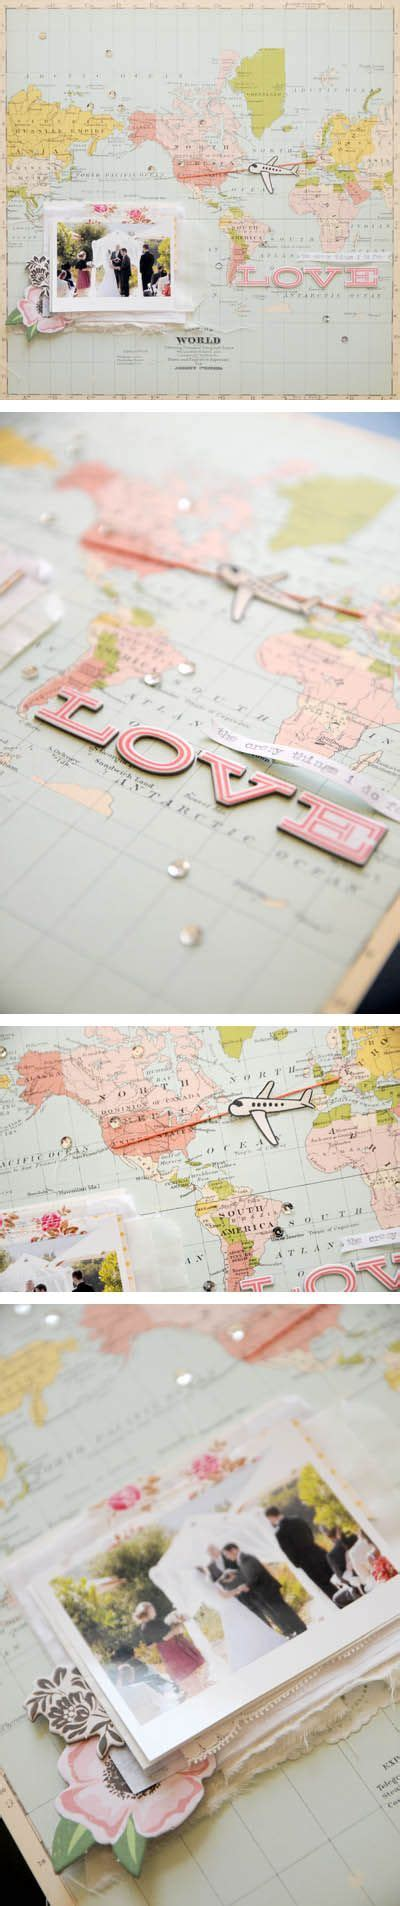 scrapbook layout travel scrapbook layout by rahel menig wedding scrapbook